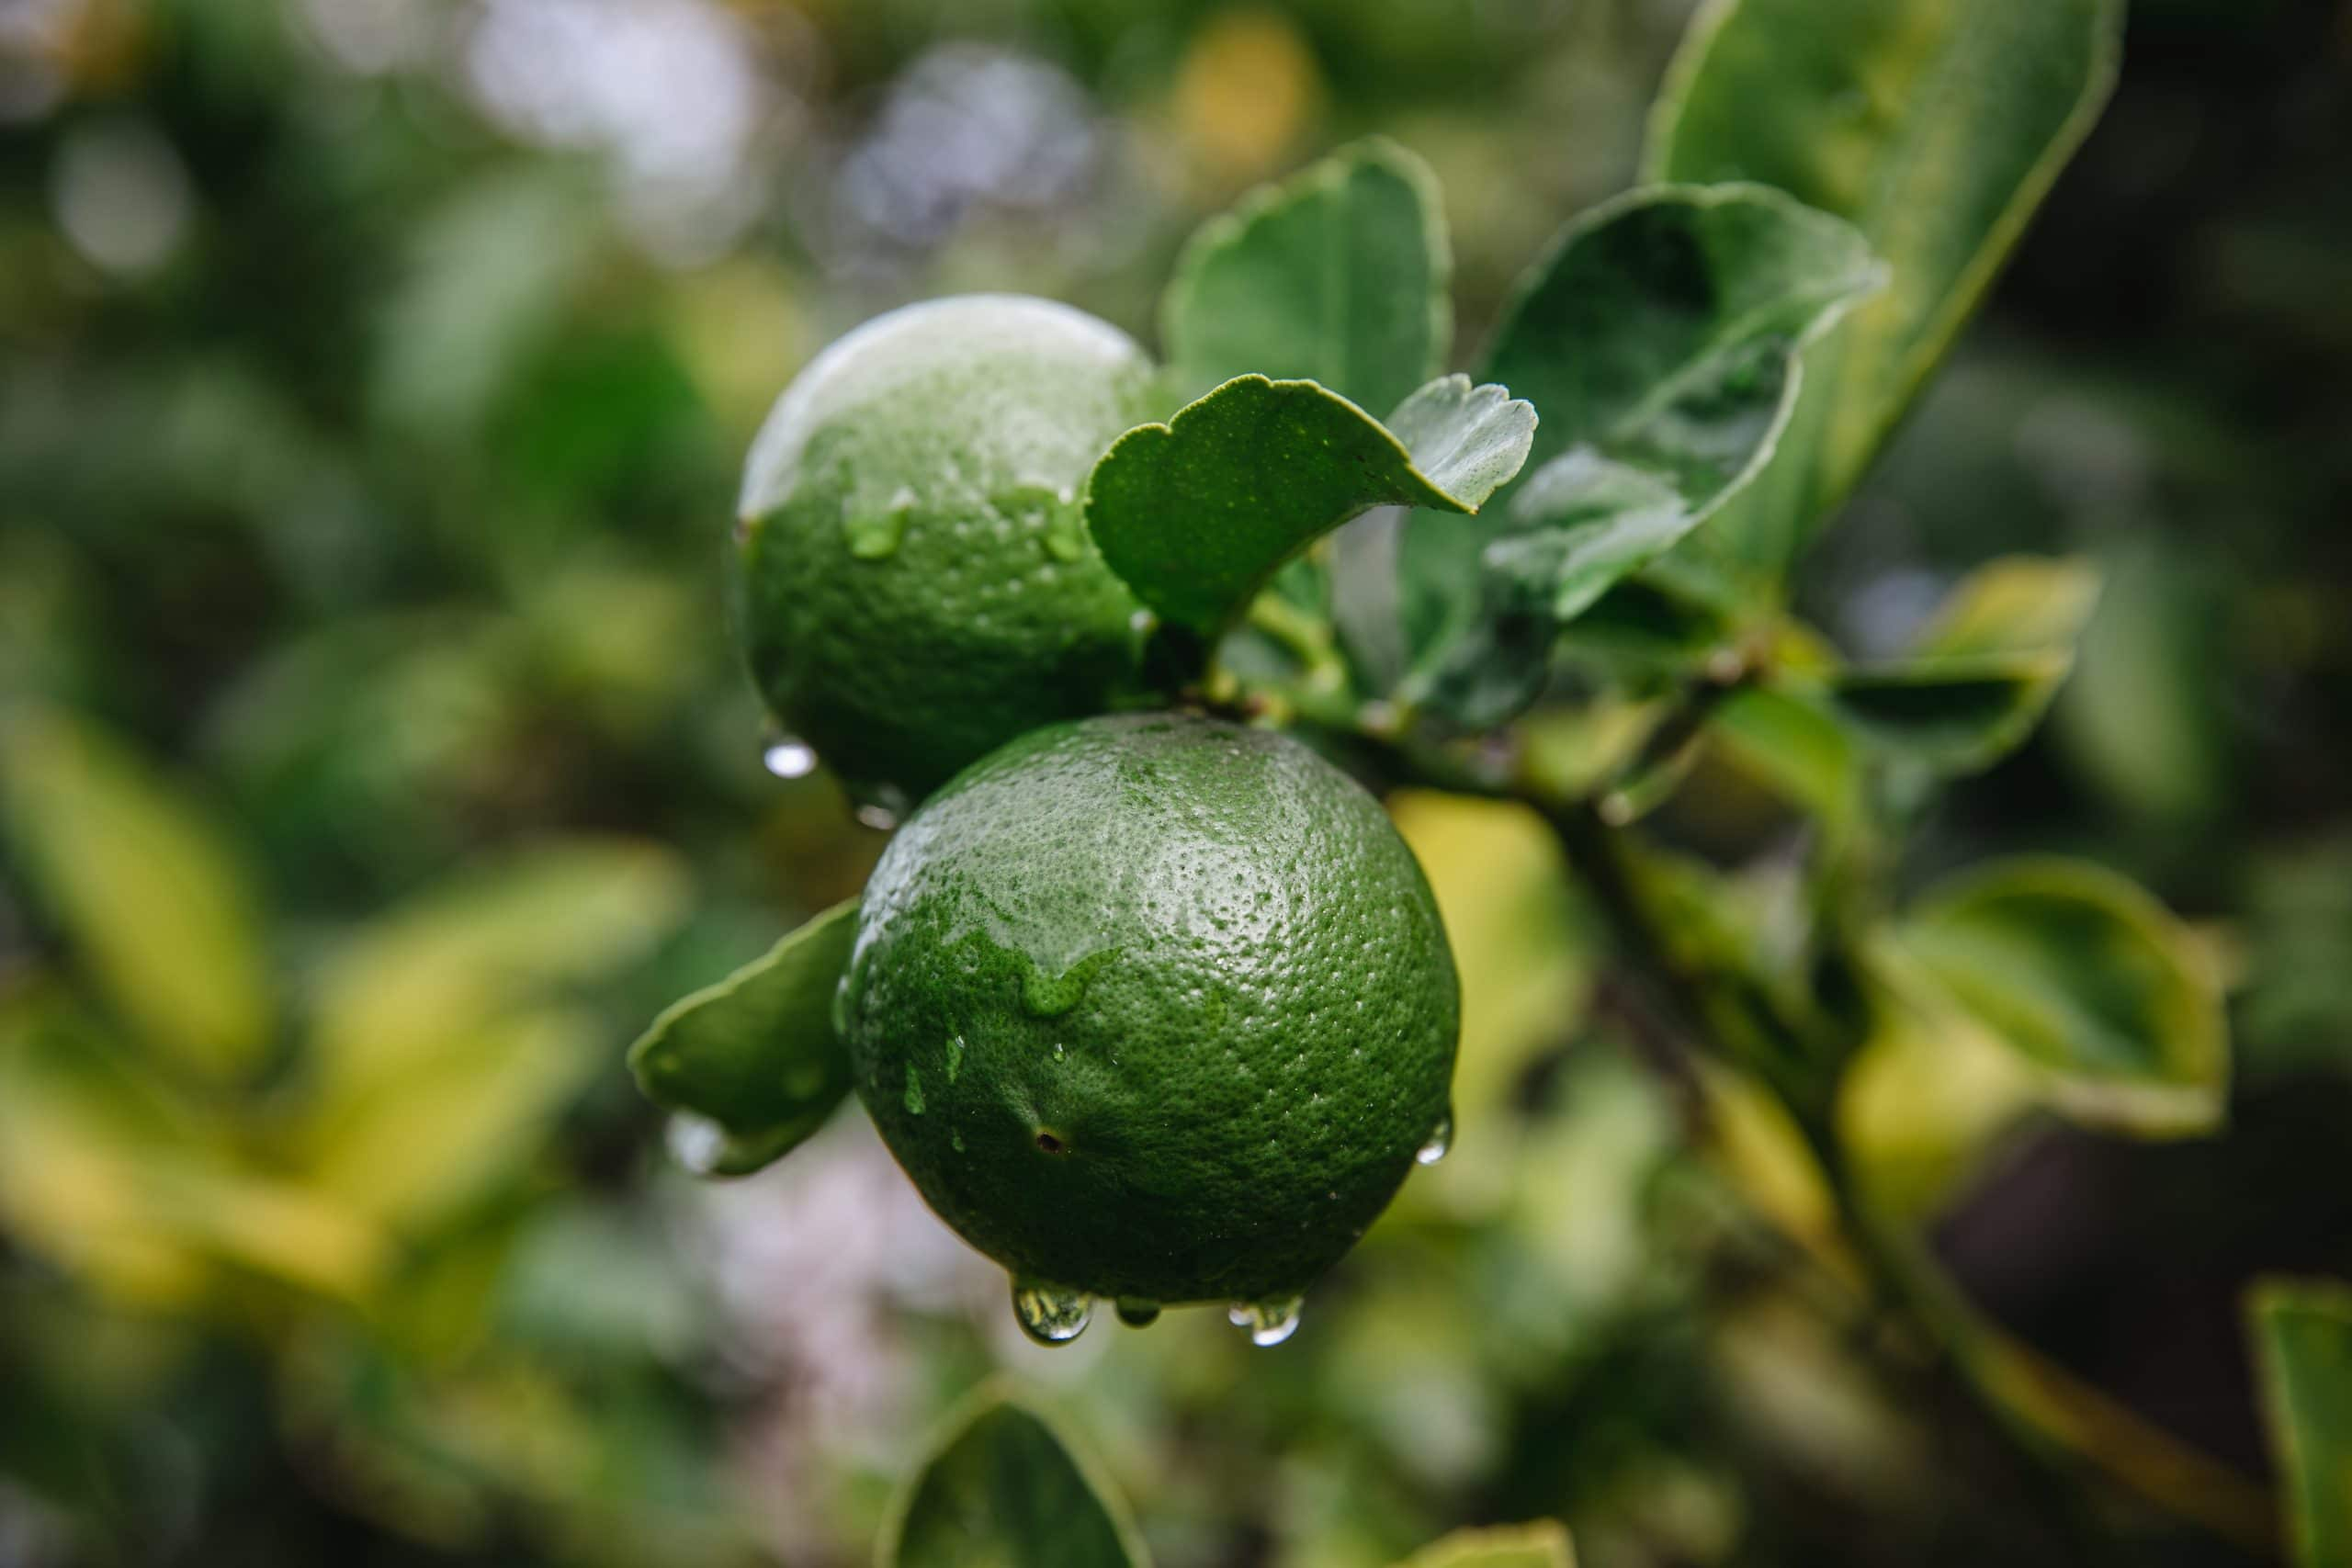 Are limes bad for you